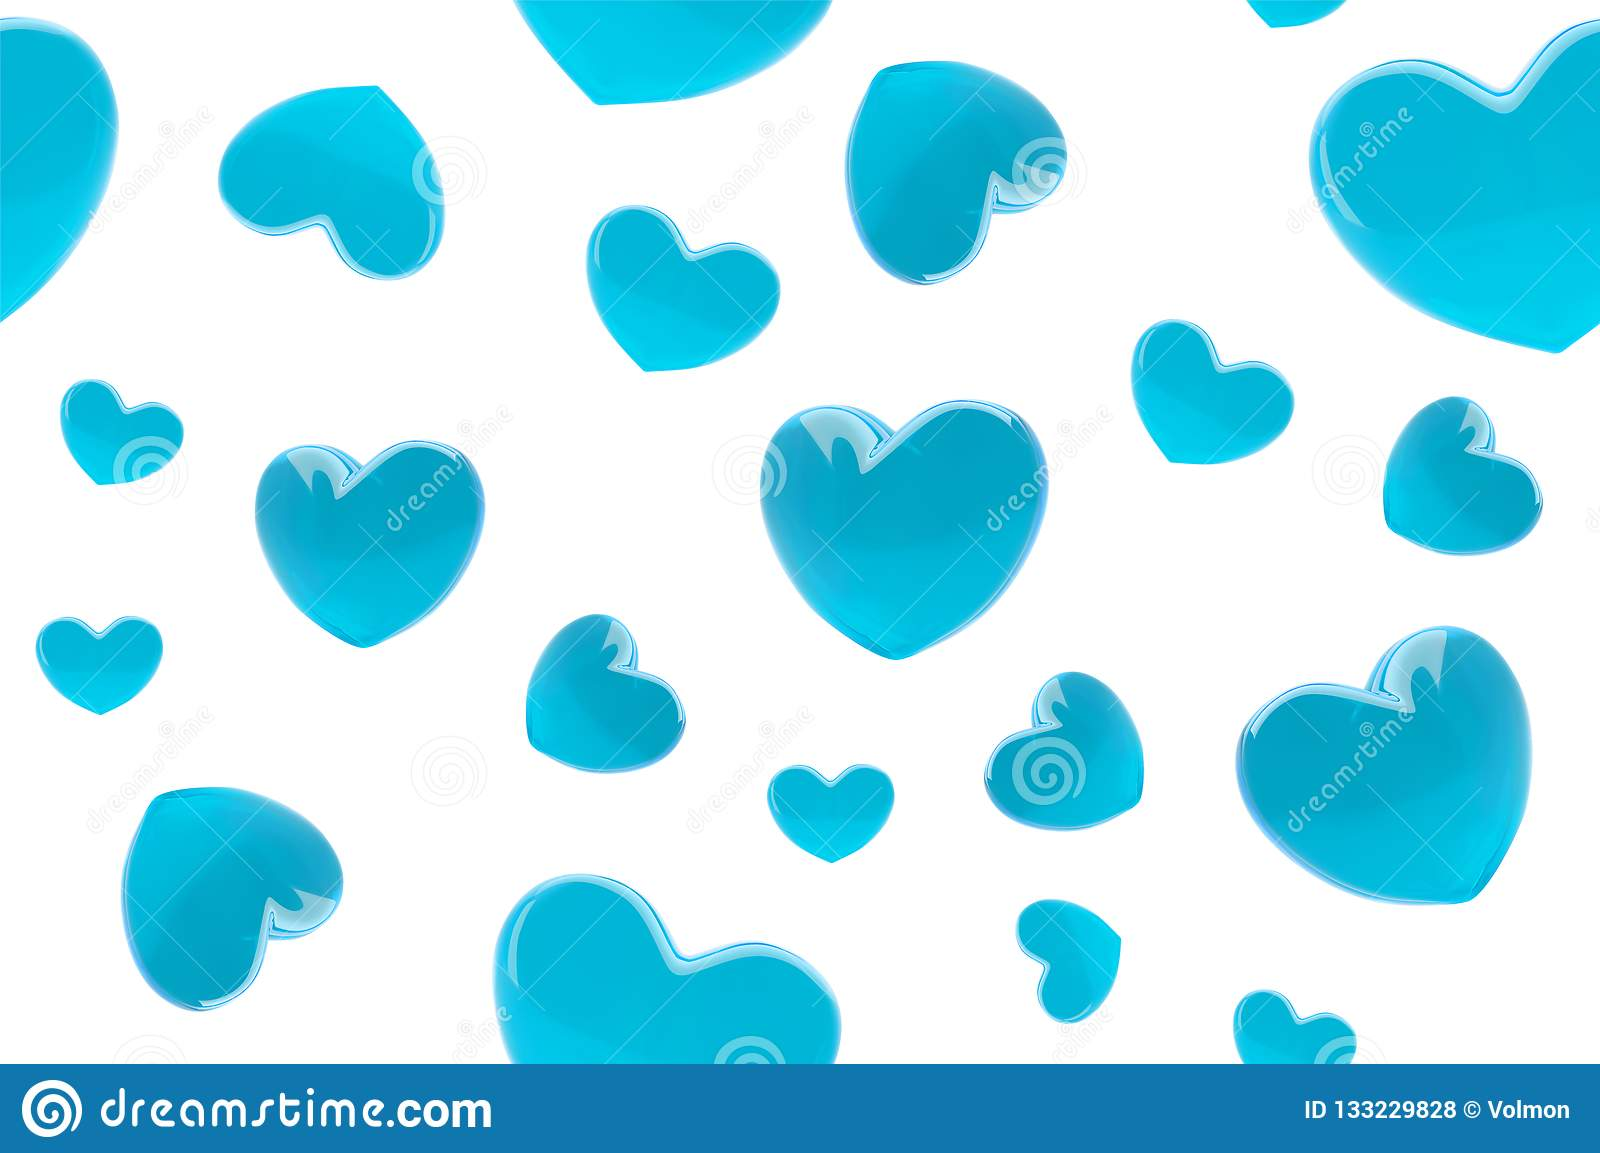 Stylish Valentine S Day Background Seamless Pattern With Turquoise